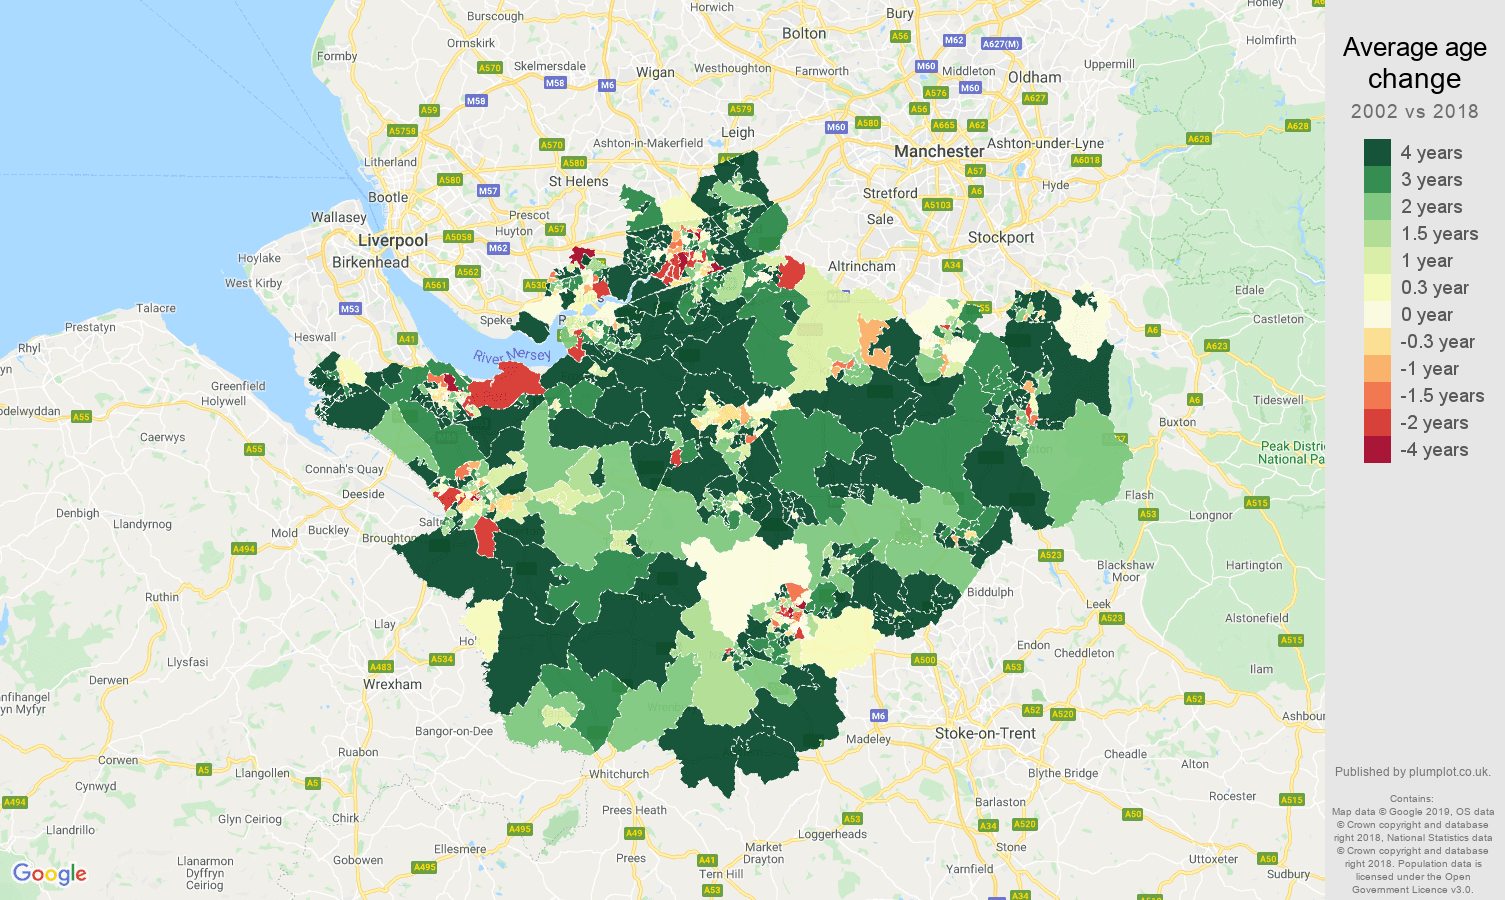 Cheshire average age change map